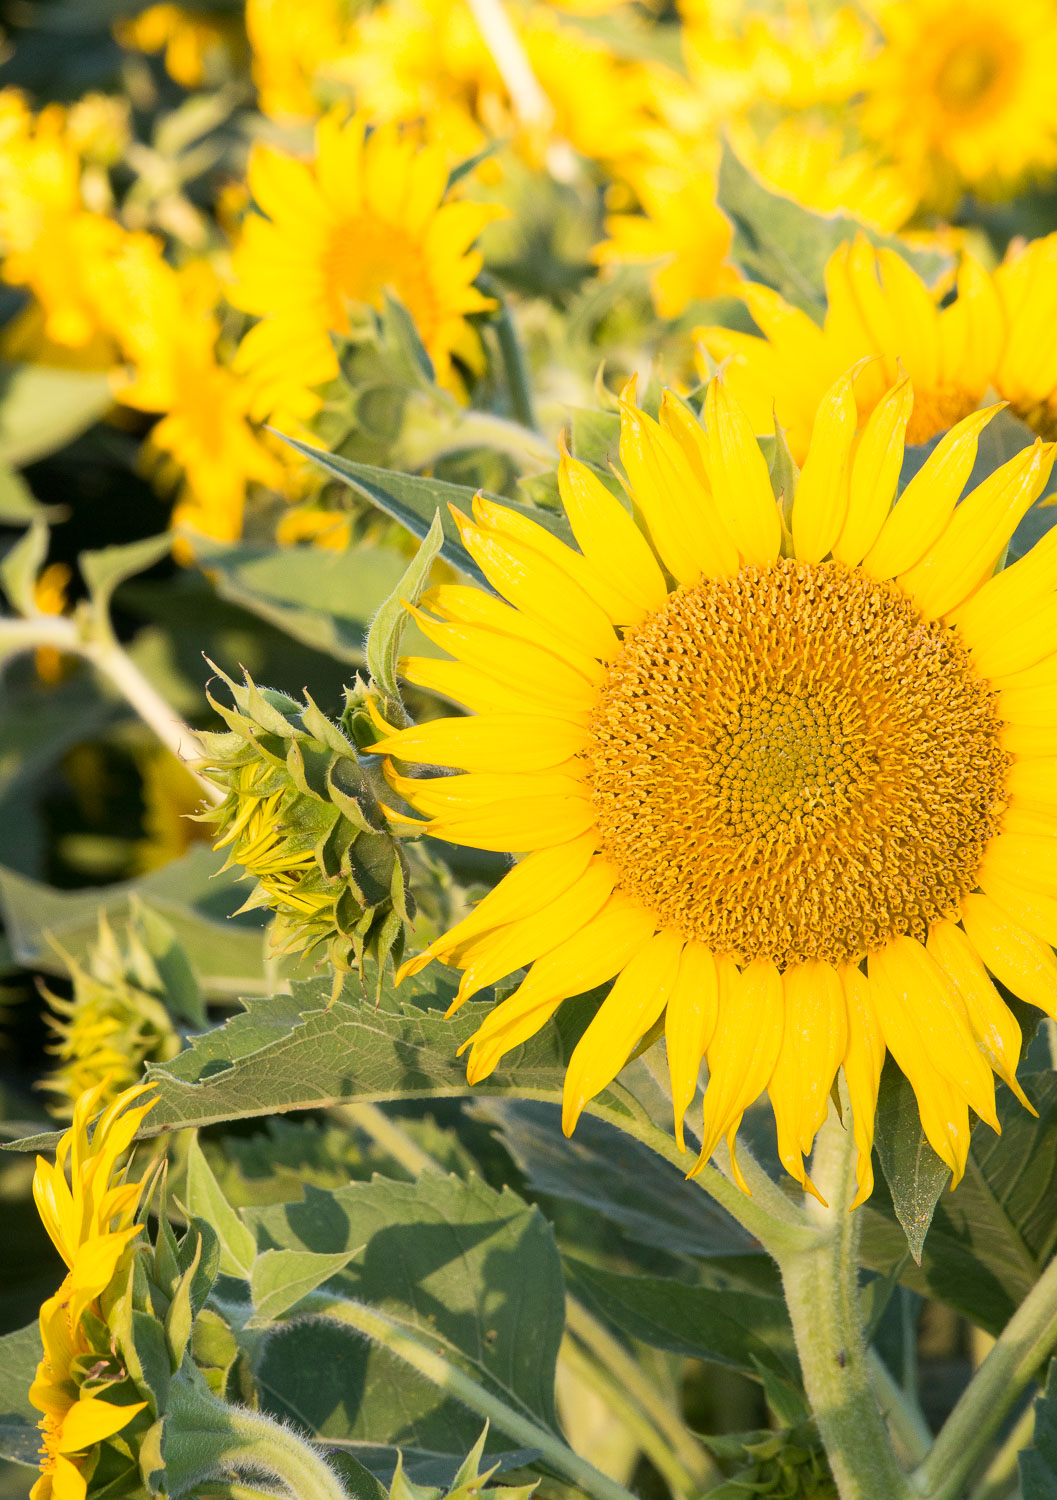 6_29_16 _sunflowers-1.jpg